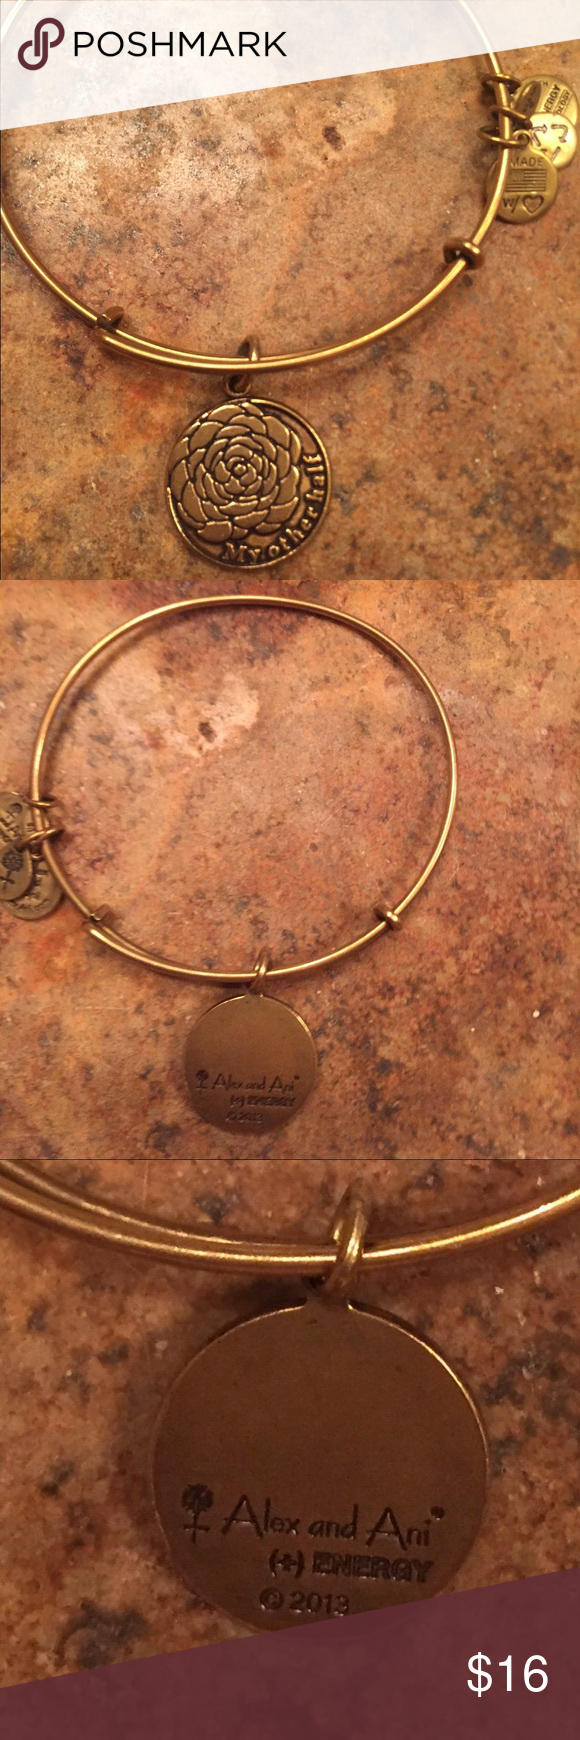 "Alex and Ani bracelet Gold adjustable ""My other half"" bracelet. In good pre owned condition. Alex & Ani Jewelry Bracelets"